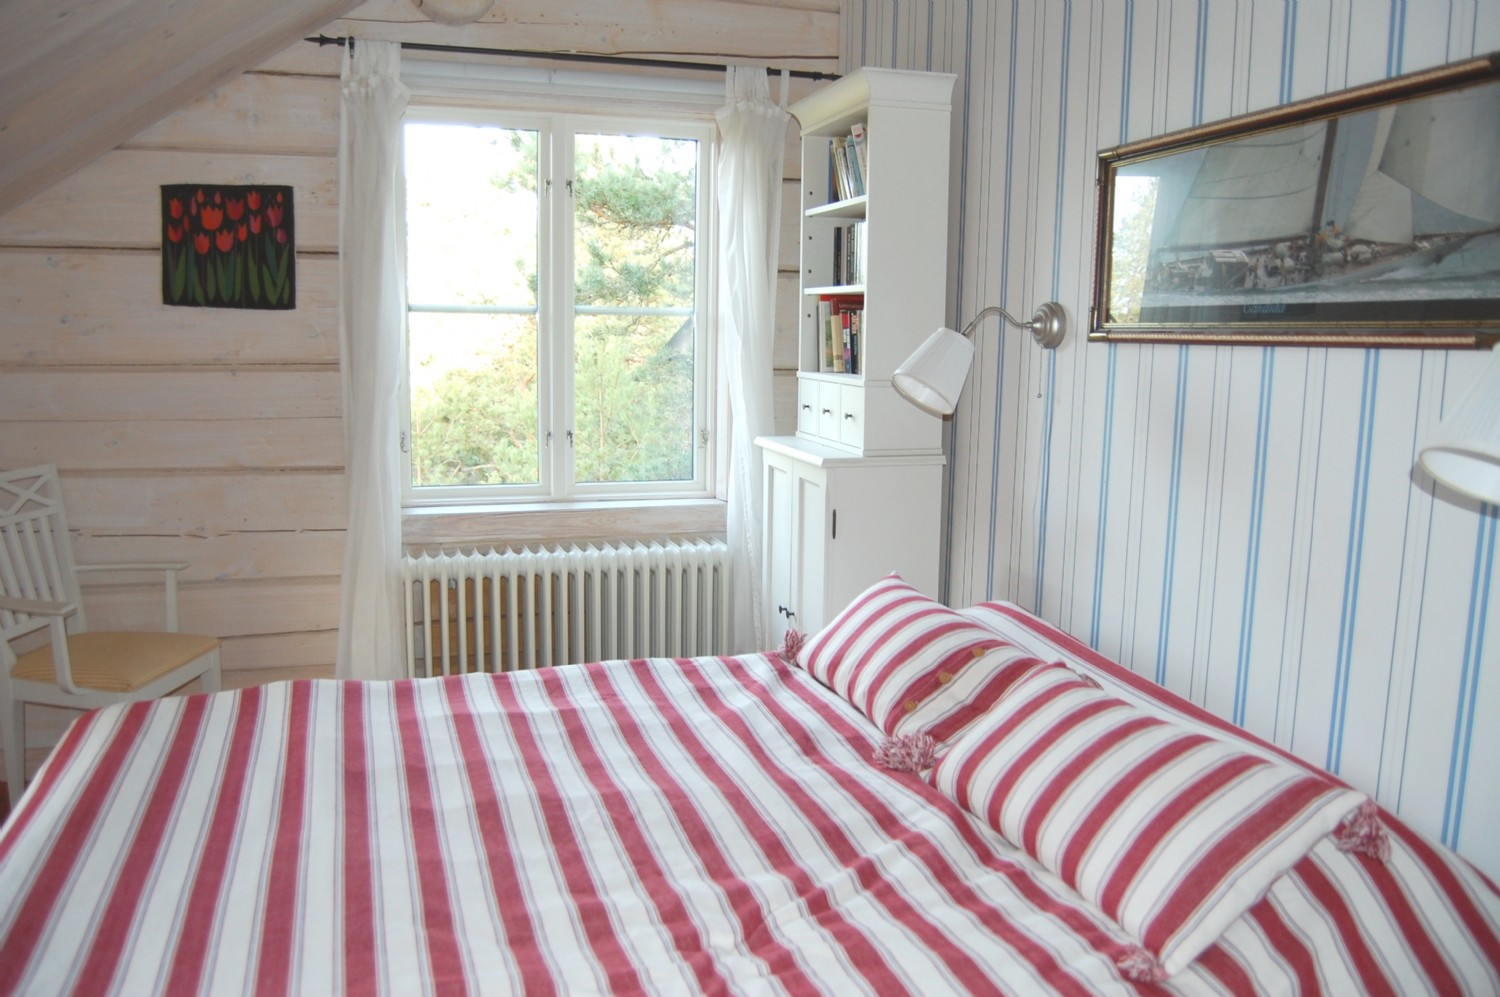 Sovrum 3 ö.v/ Bed room 3 upper floor